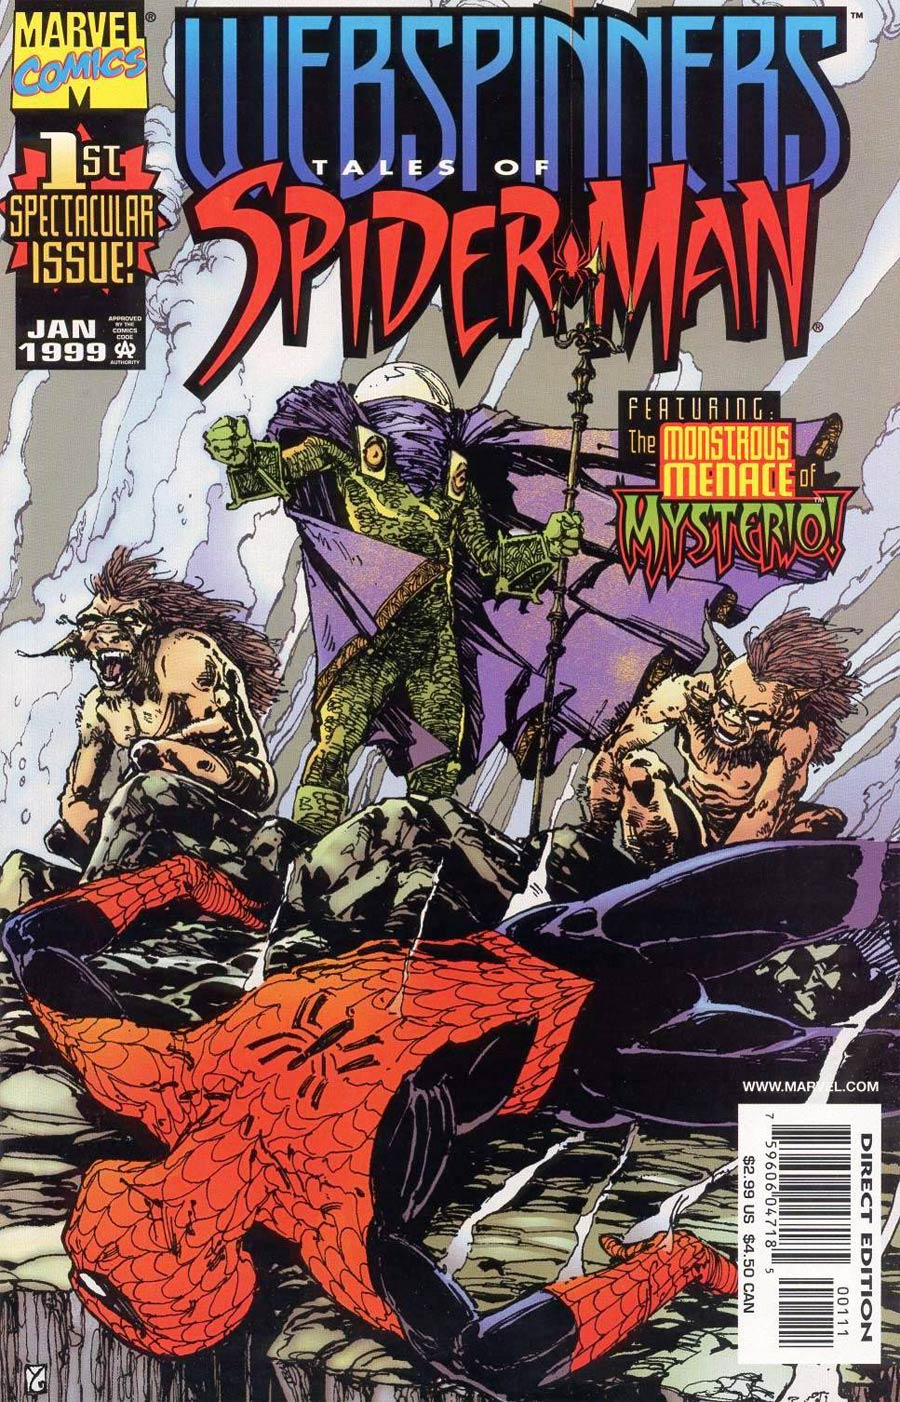 Webspinners Tales Of Spider-Man #1 Cover A